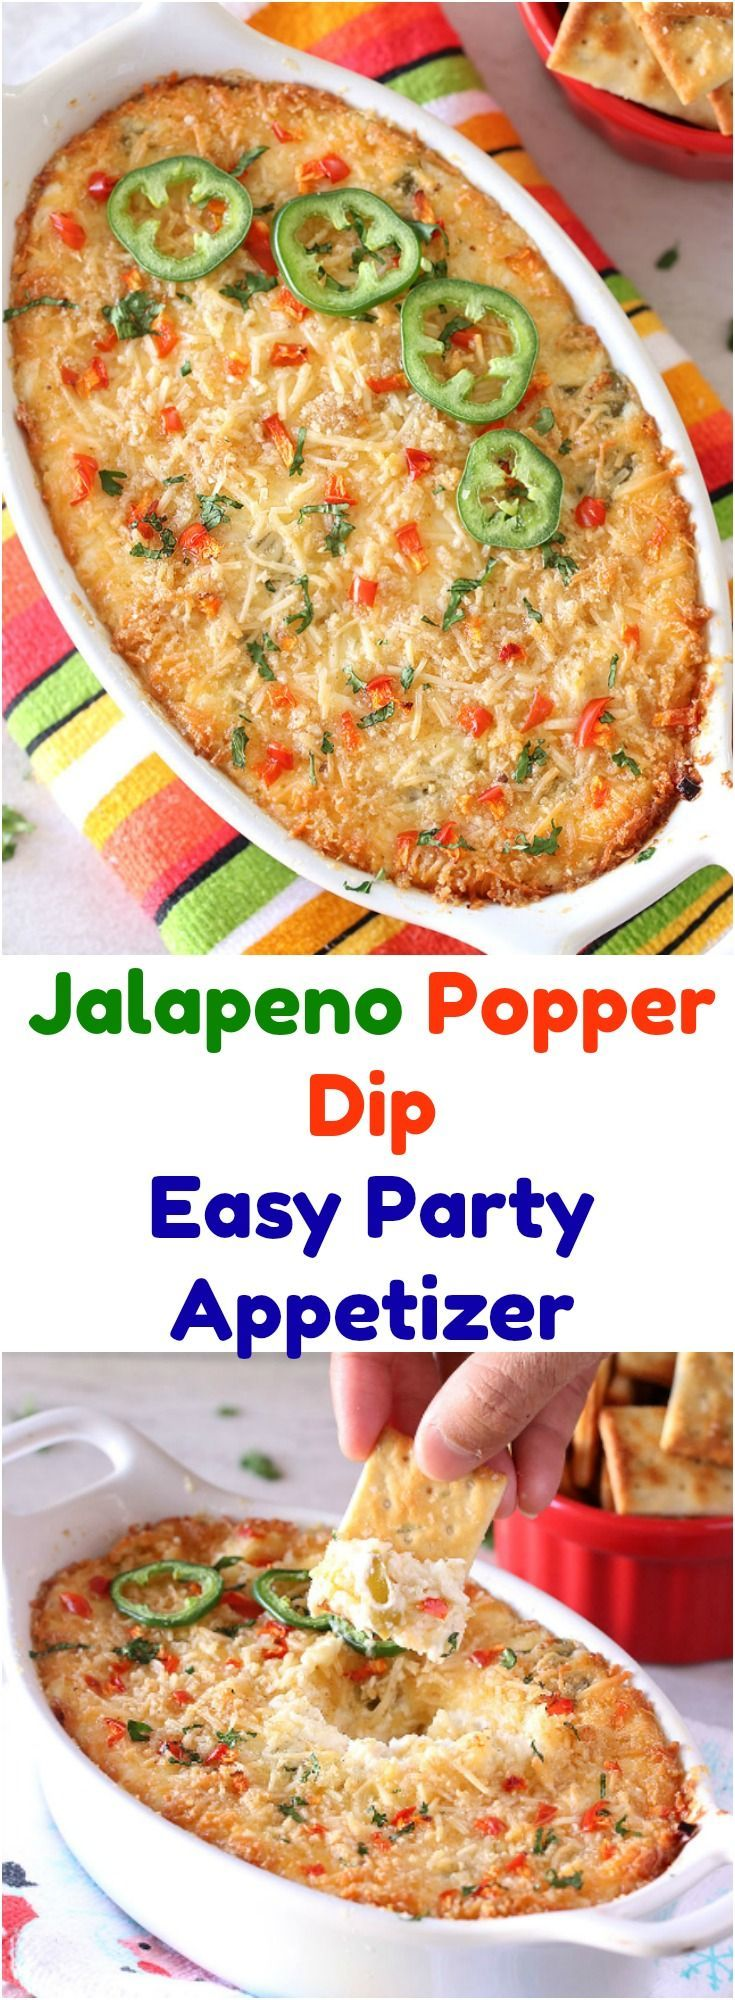 I love Jalapeno Poppers. Unfortunately, they are a big hassle to make. You have to hollow out the peppers one by one, stuff them with cheese stuffing, then bread them and deep fry them. And during this busy time of the year, I couldn't find time to make this from scratch. So I did what I do most of the time with a recipe where too much work - Just turn it into a dip.. #ad #GrabSomeCheer #collectivebiasin #appetizers #snacks #holidayrecipe #vegetarian #PartyAppetizer #cheesyrecipe #easyrecipe